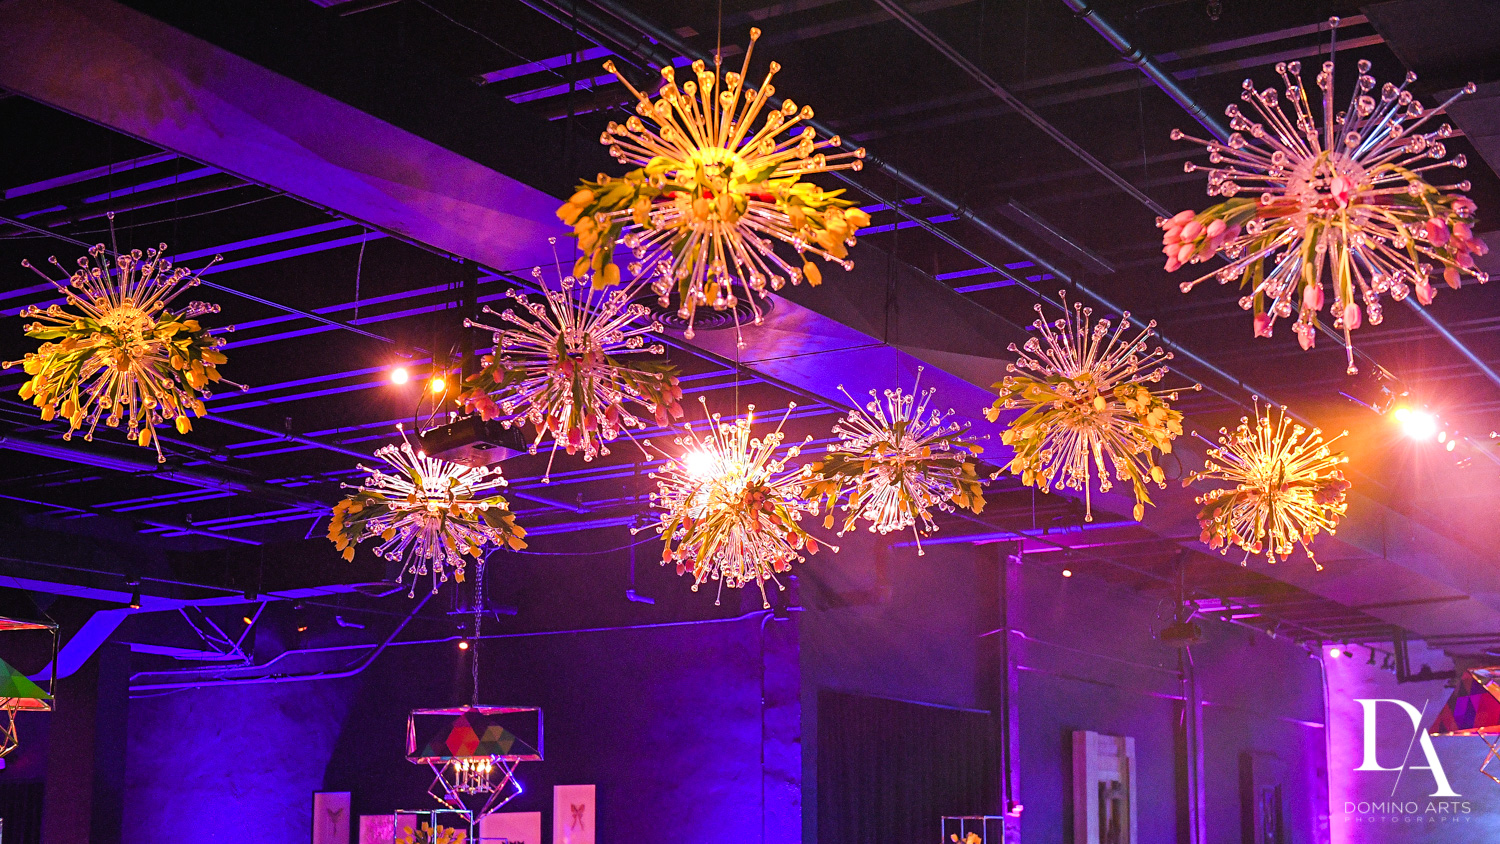 chandeliers at Colorful B'Not Mitzvah at Gallery of Amazing Things by Domino Arts Photography